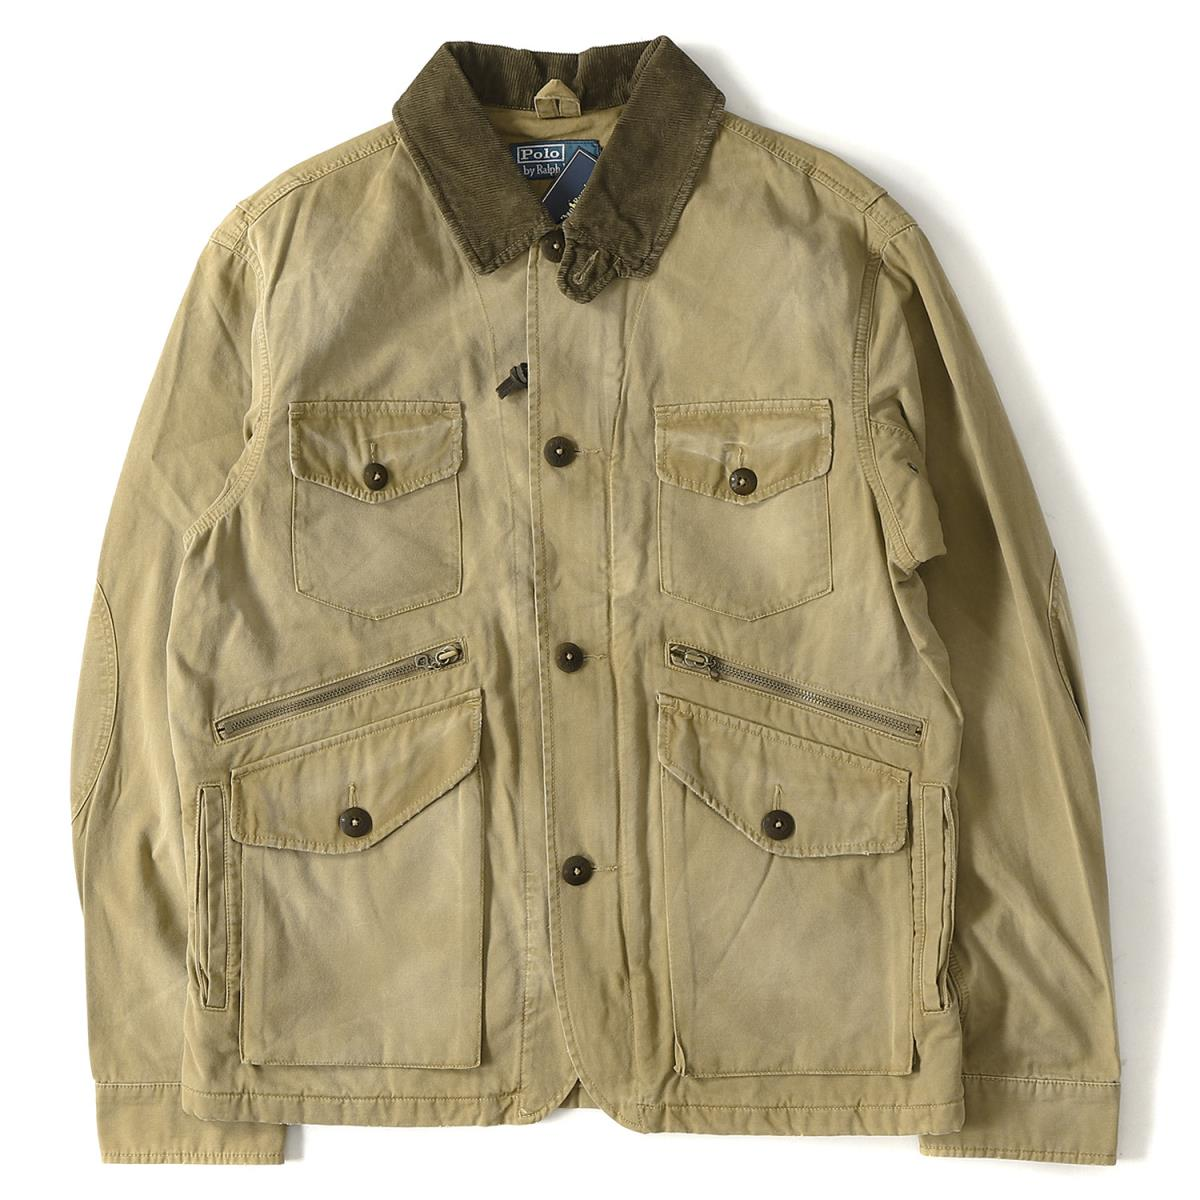 47fc2c7b330425 POLO by Ralph Lauren (polo by Ralph Lauren) vintage processing hunting jacket  brown S